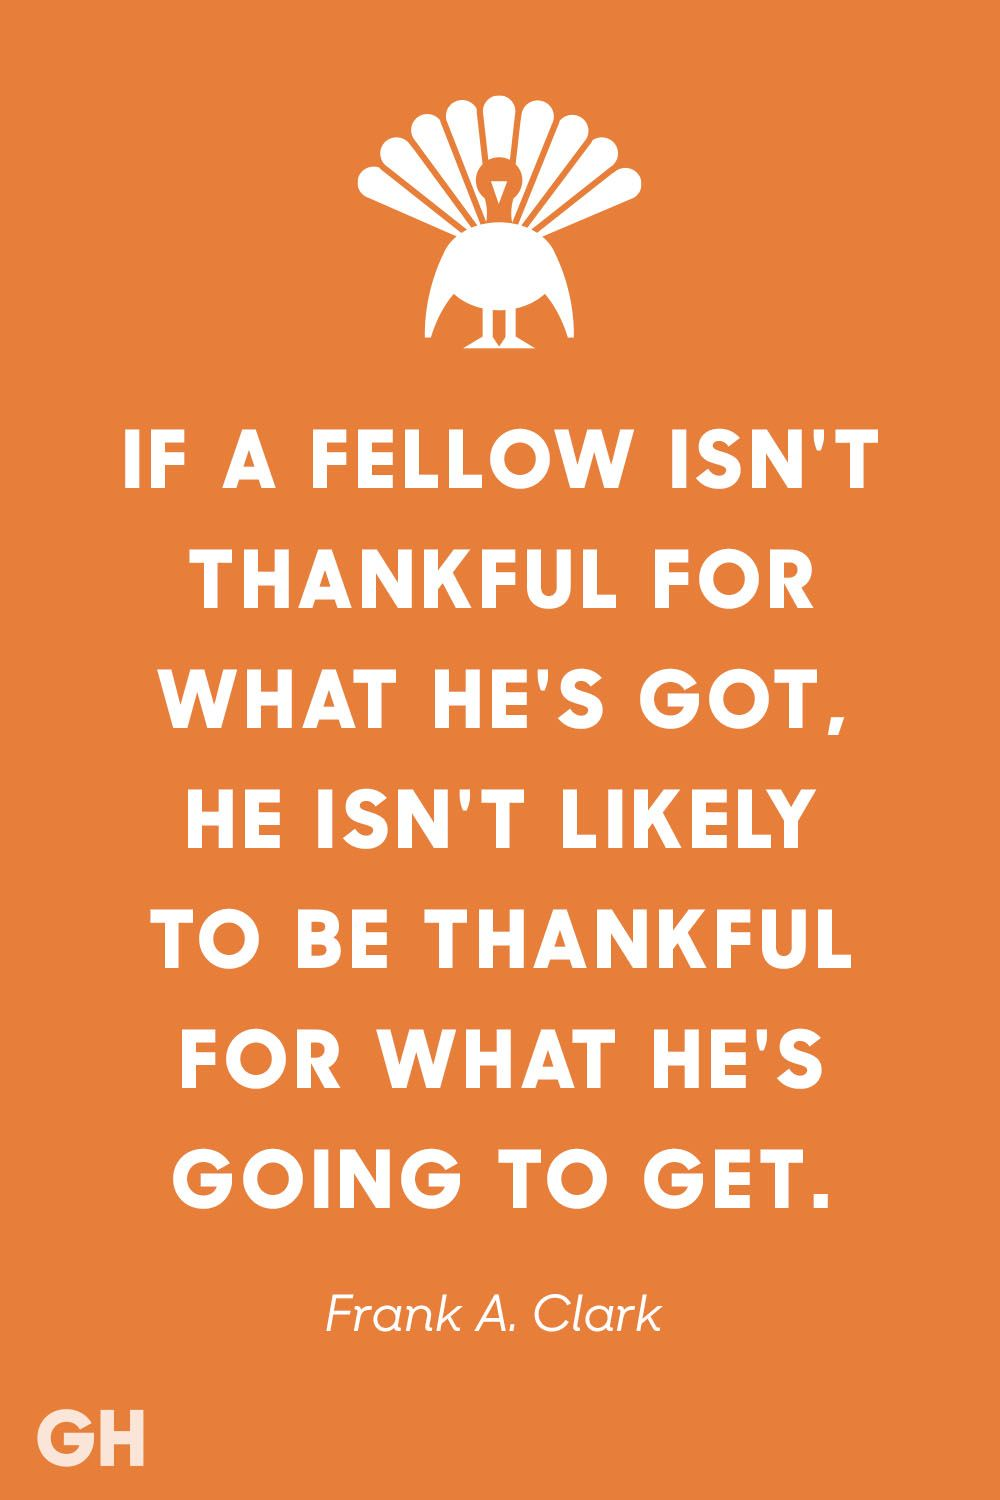 Thanksgiving Quotes Inspirational 22 Best Thanksgiving Quotes   Inspirational and Funny Quotes About  Thanksgiving Quotes Inspirational